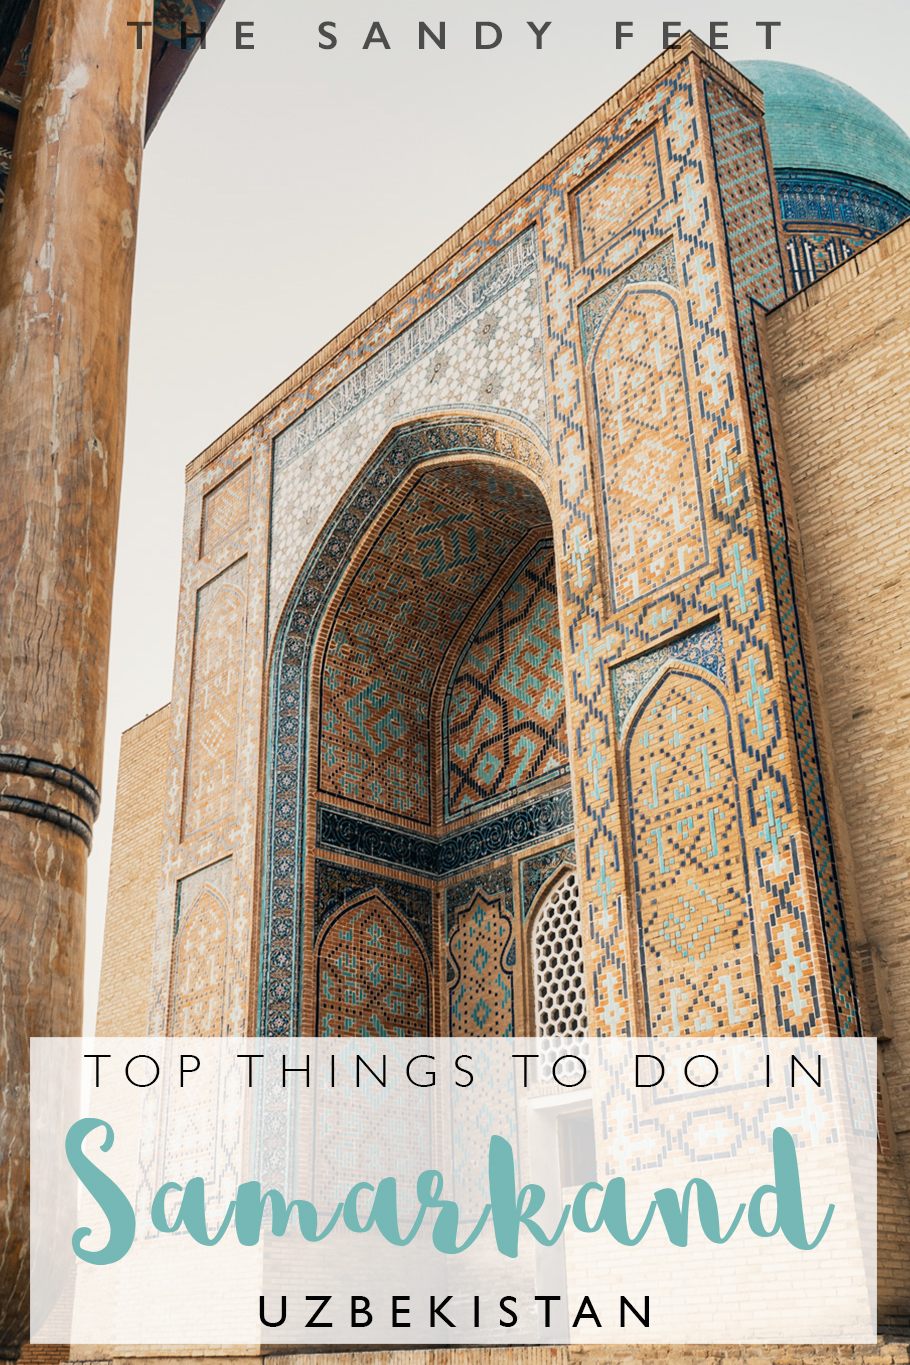 Samarkand Travel Guide: The Best Things To Do In Samarkand, the ancient masterpiece of Uzbekistan's Silk Road.